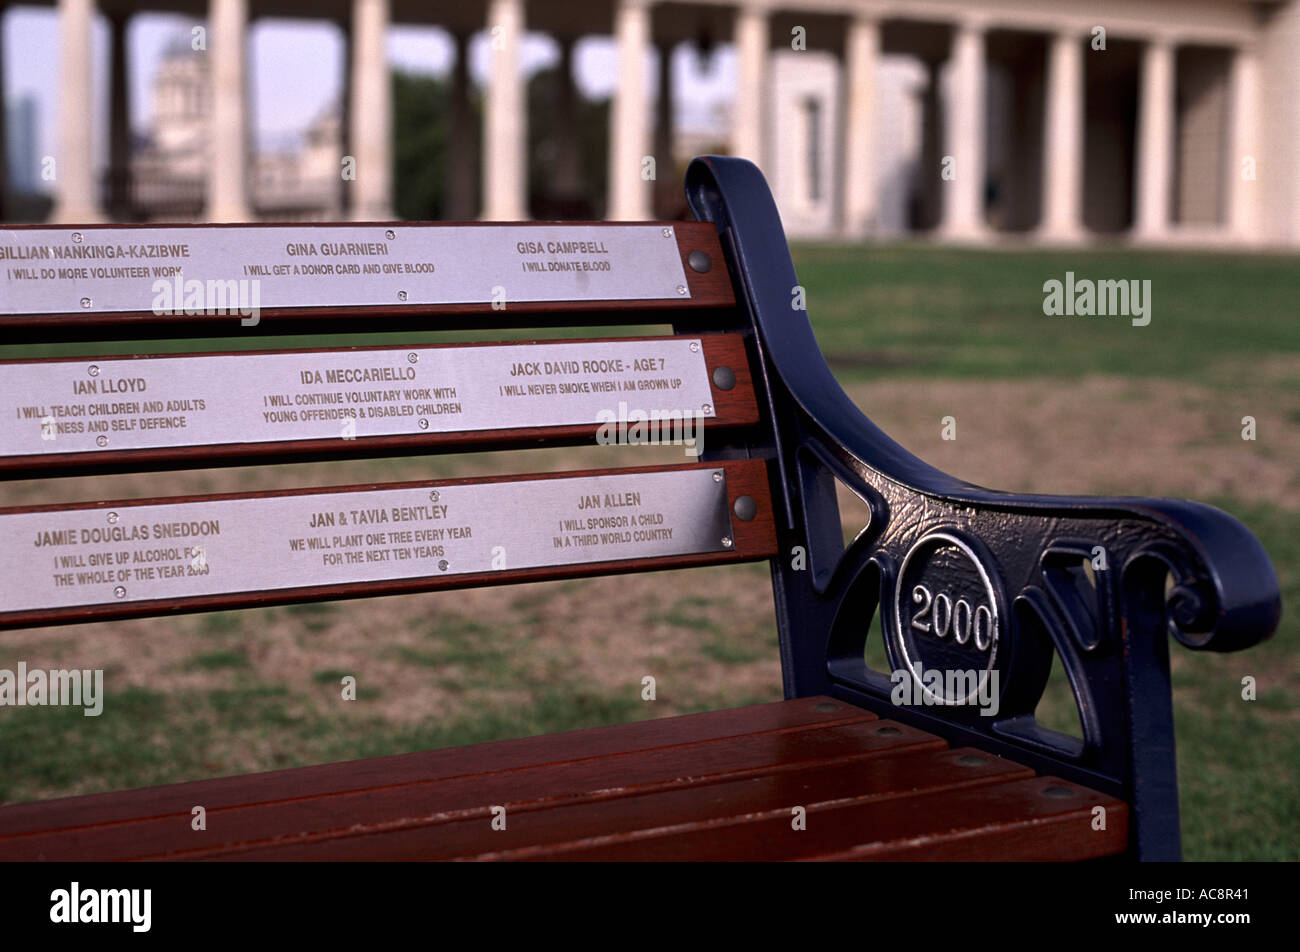 'I will volunteer to donate blood, teach children, never smoke, give up alcohol, ...' Year 2000 Promise Bench, Greenwich, UK - Stock Image